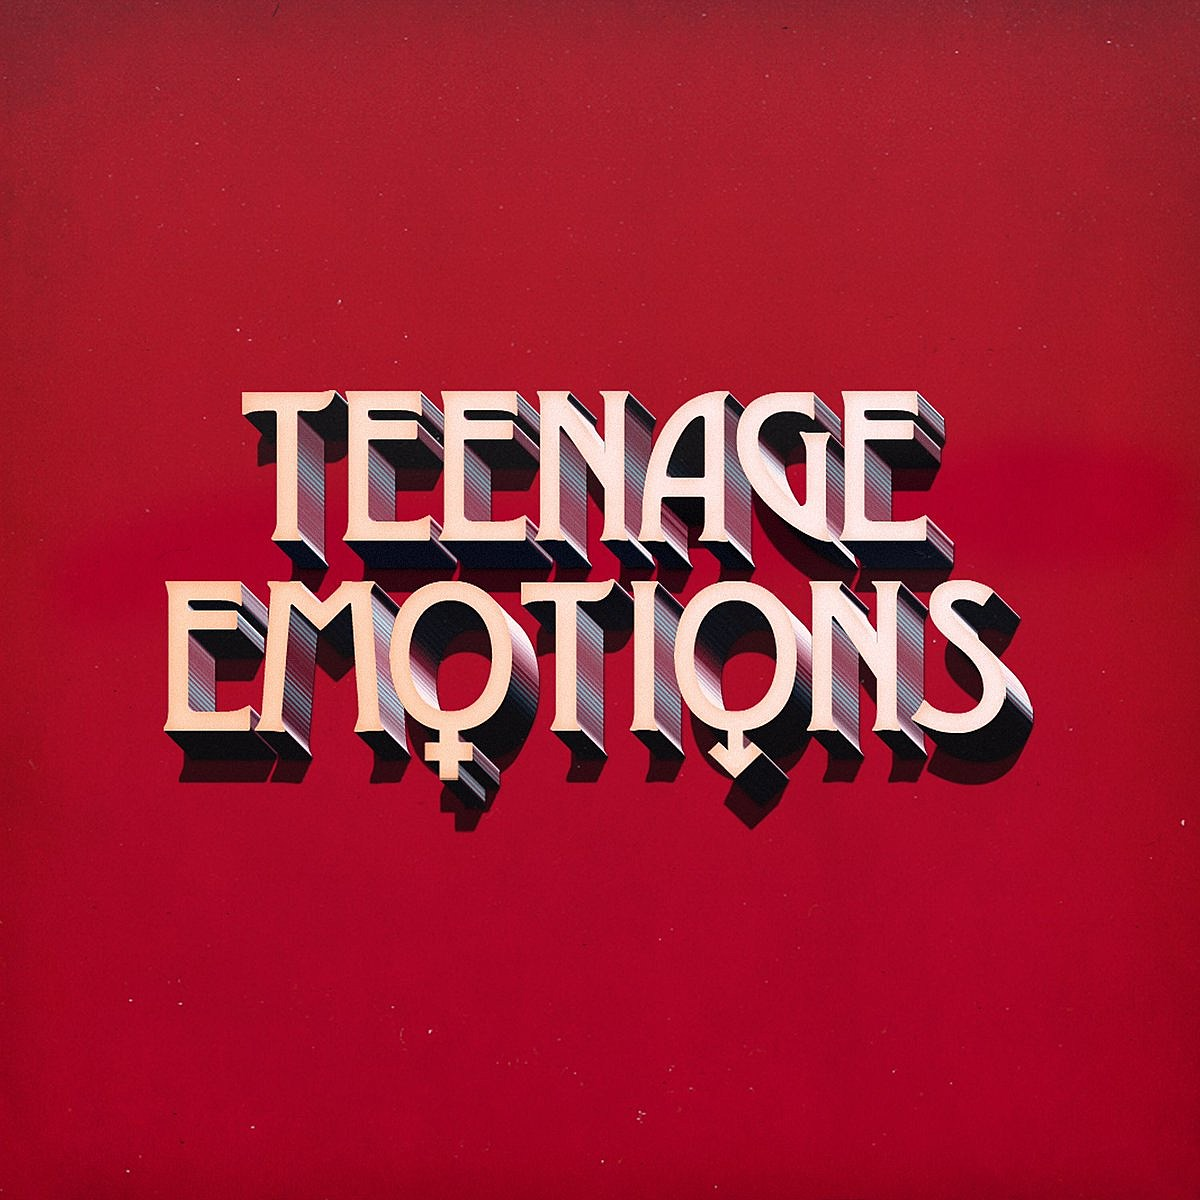 Teenage Emotions logo by Mihailo Andic